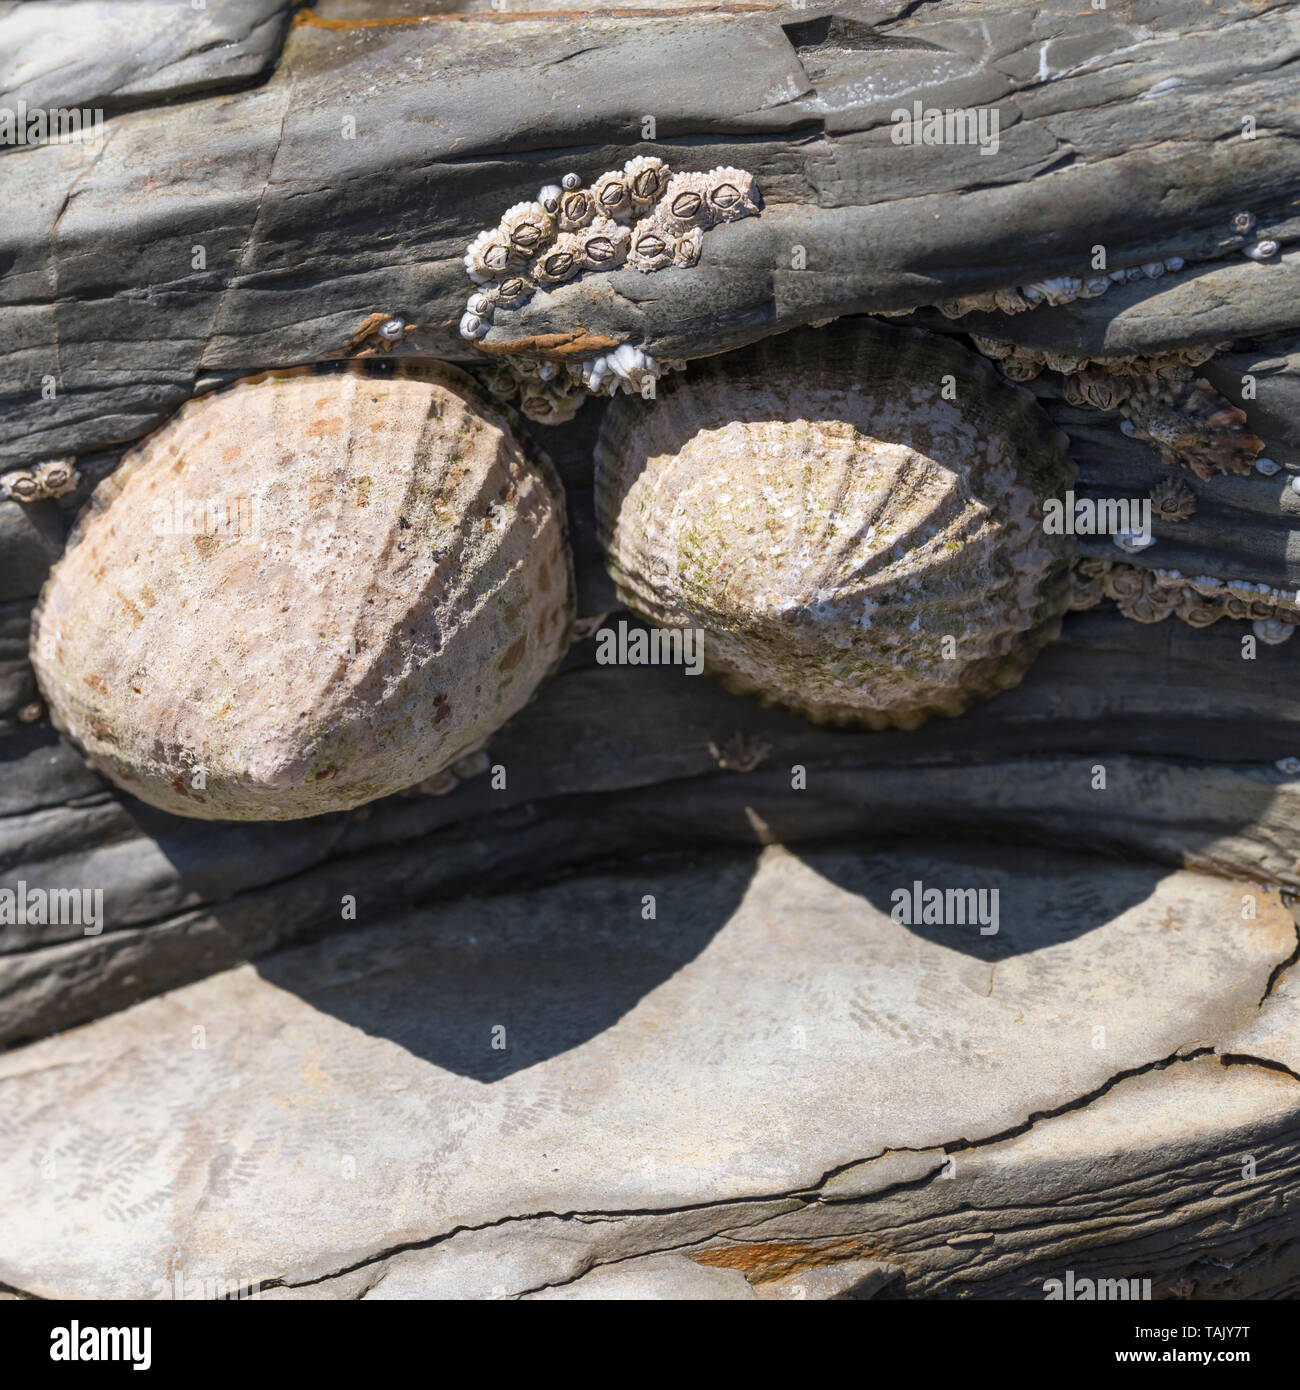 Limpets and barnacles on a beach rock awaiting the return of high tide. Stock Photo